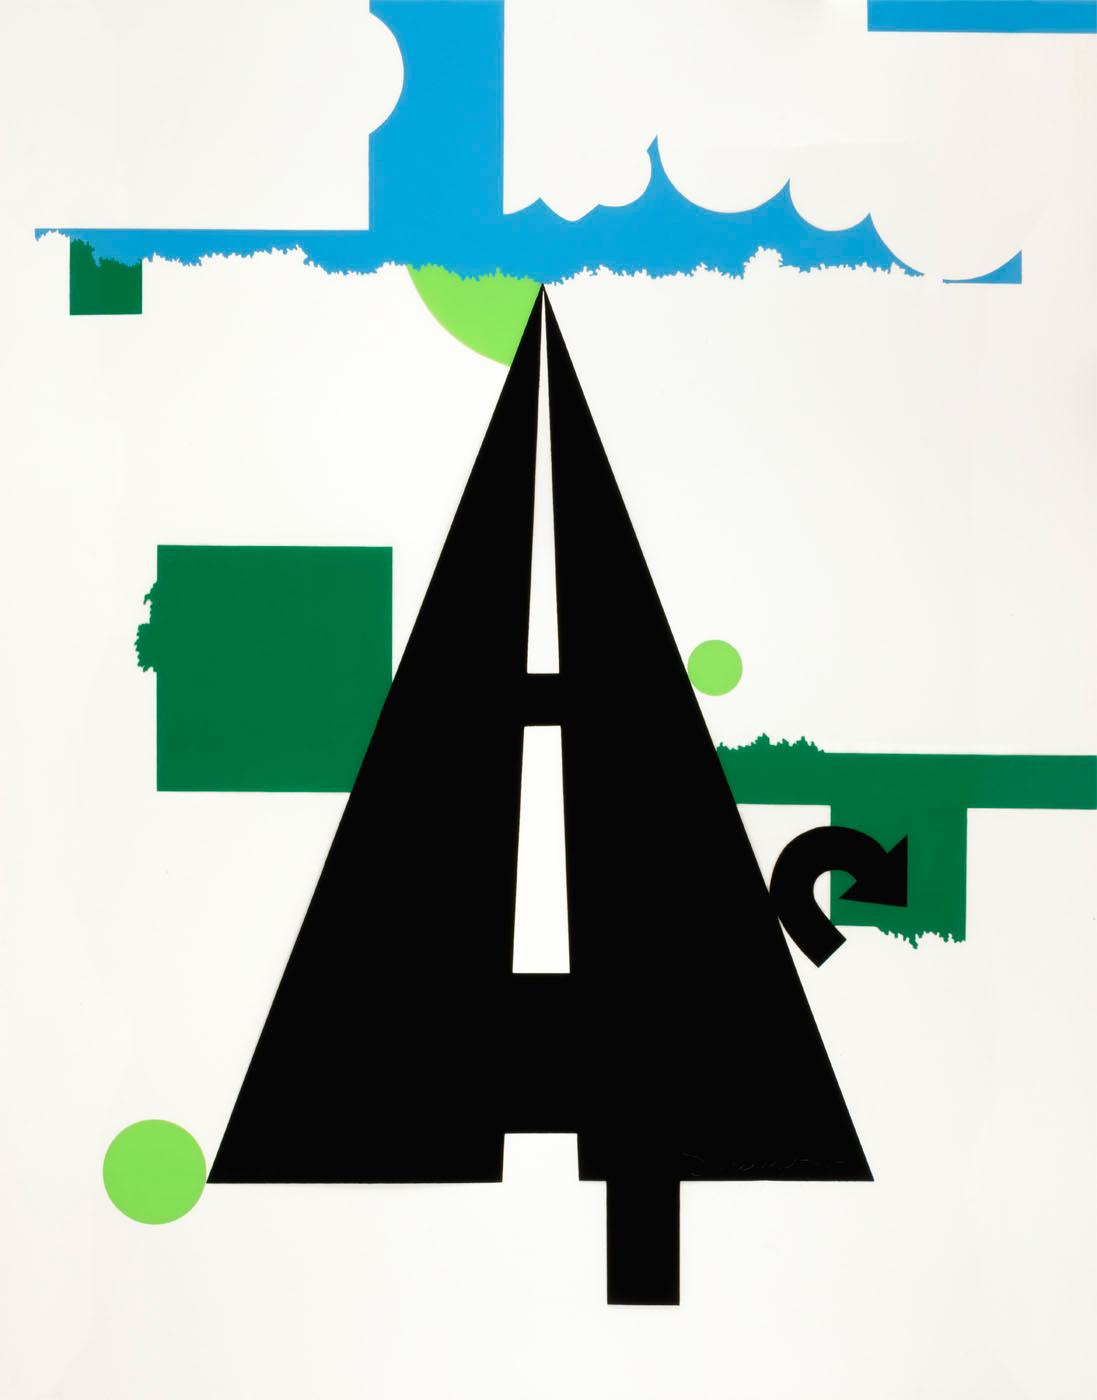 famous painting Landscape II, from the portfolio 11 Pop Artists, Volume II of Allan D'arcangelo